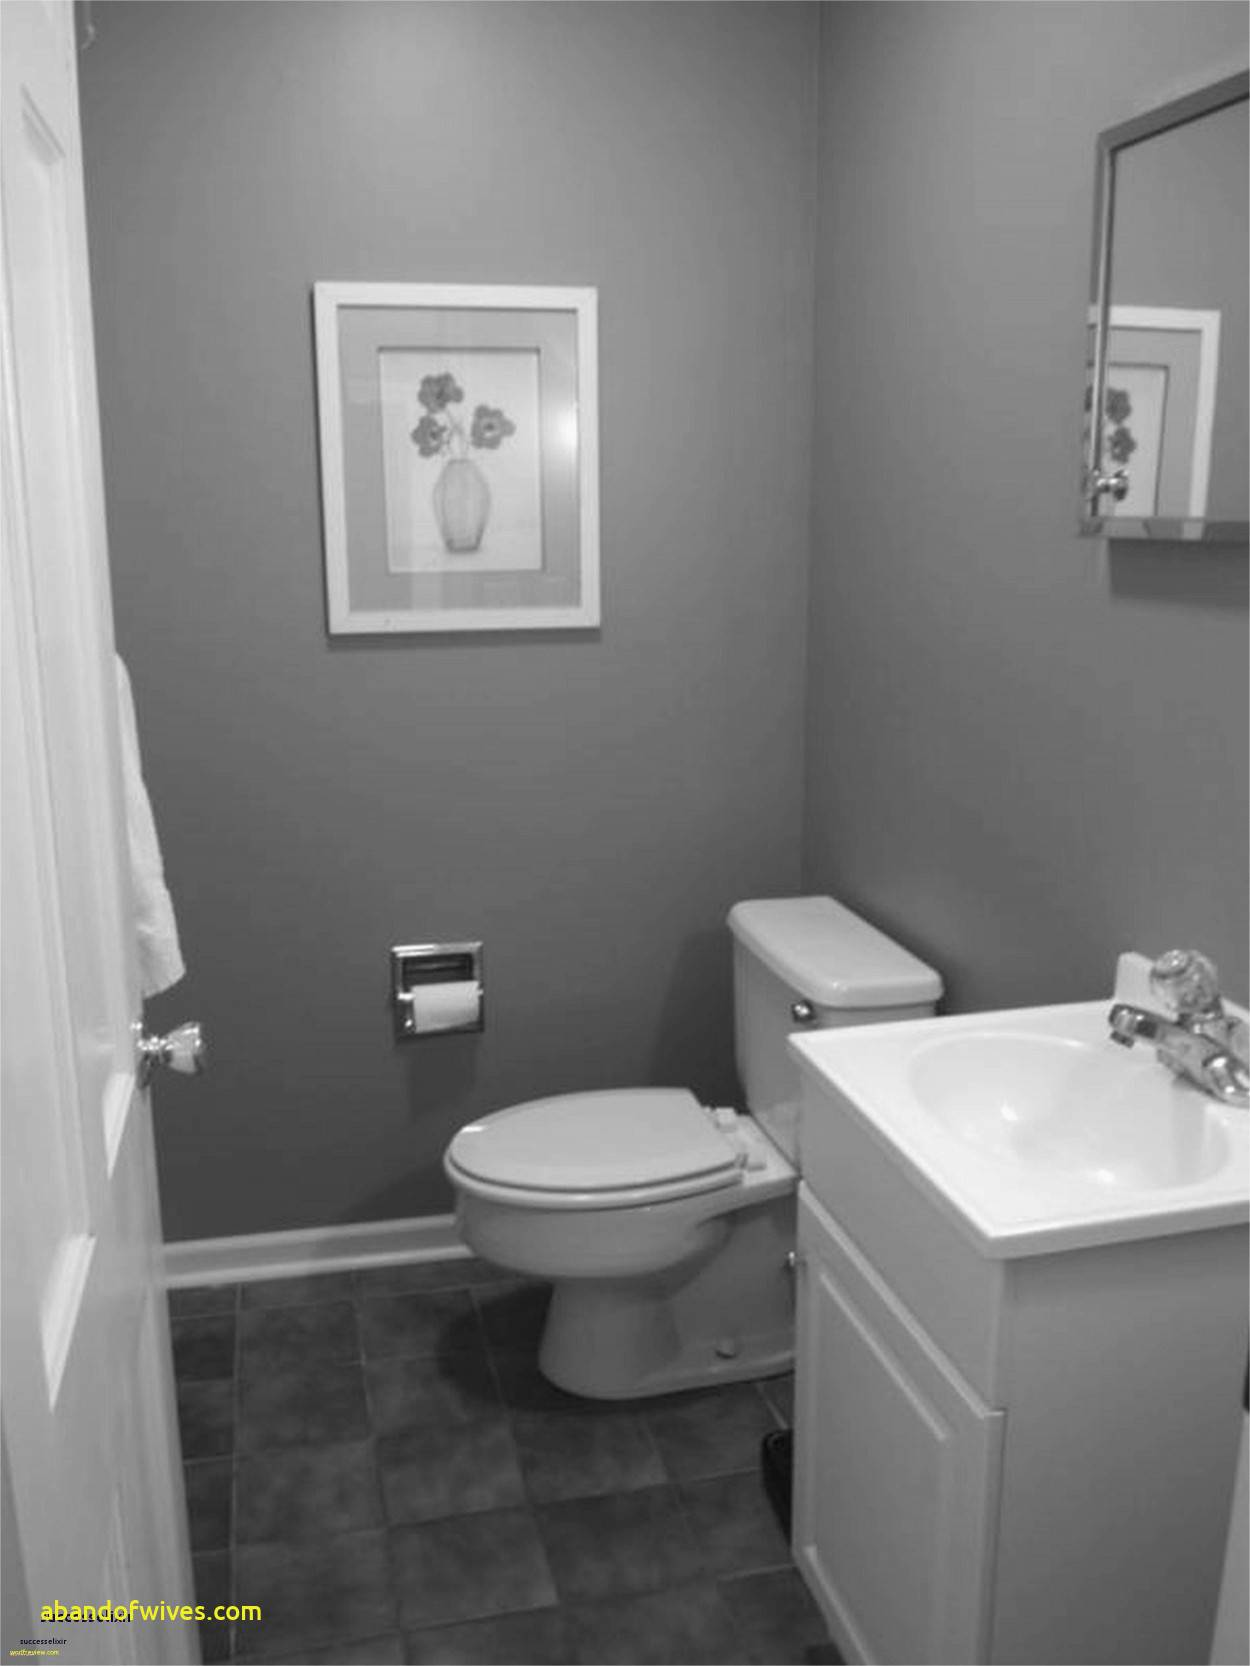 black white and grey bathroom ideas awesome 24 black and white bathroom design ideas norwin home design of black white and grey bathroom ideas